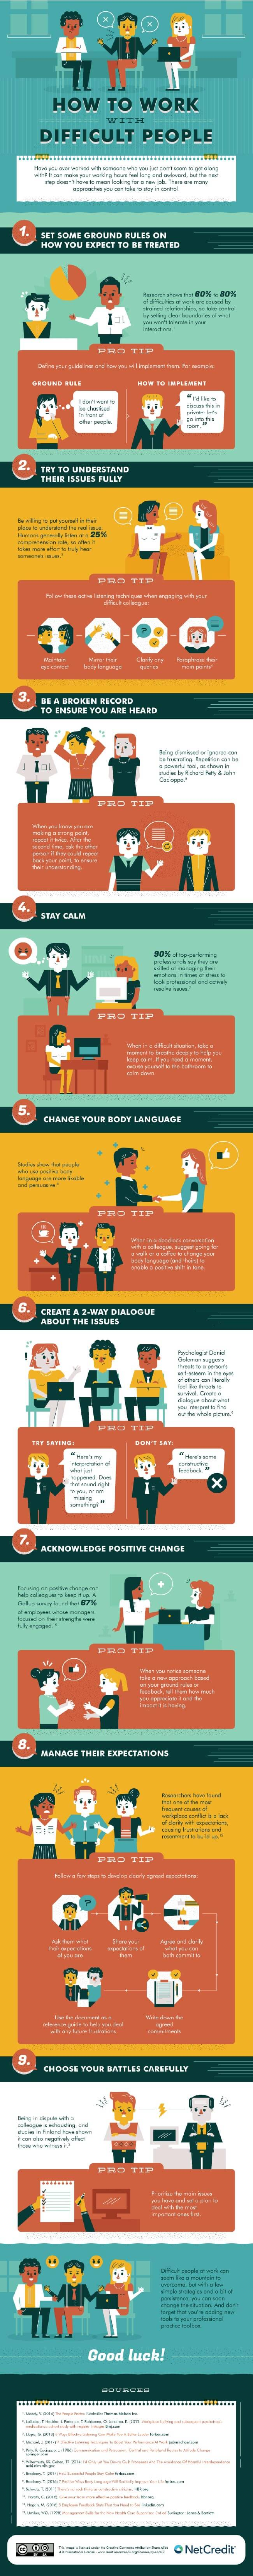 9 effective ways to work with difficult people and win their trust tipsographic main